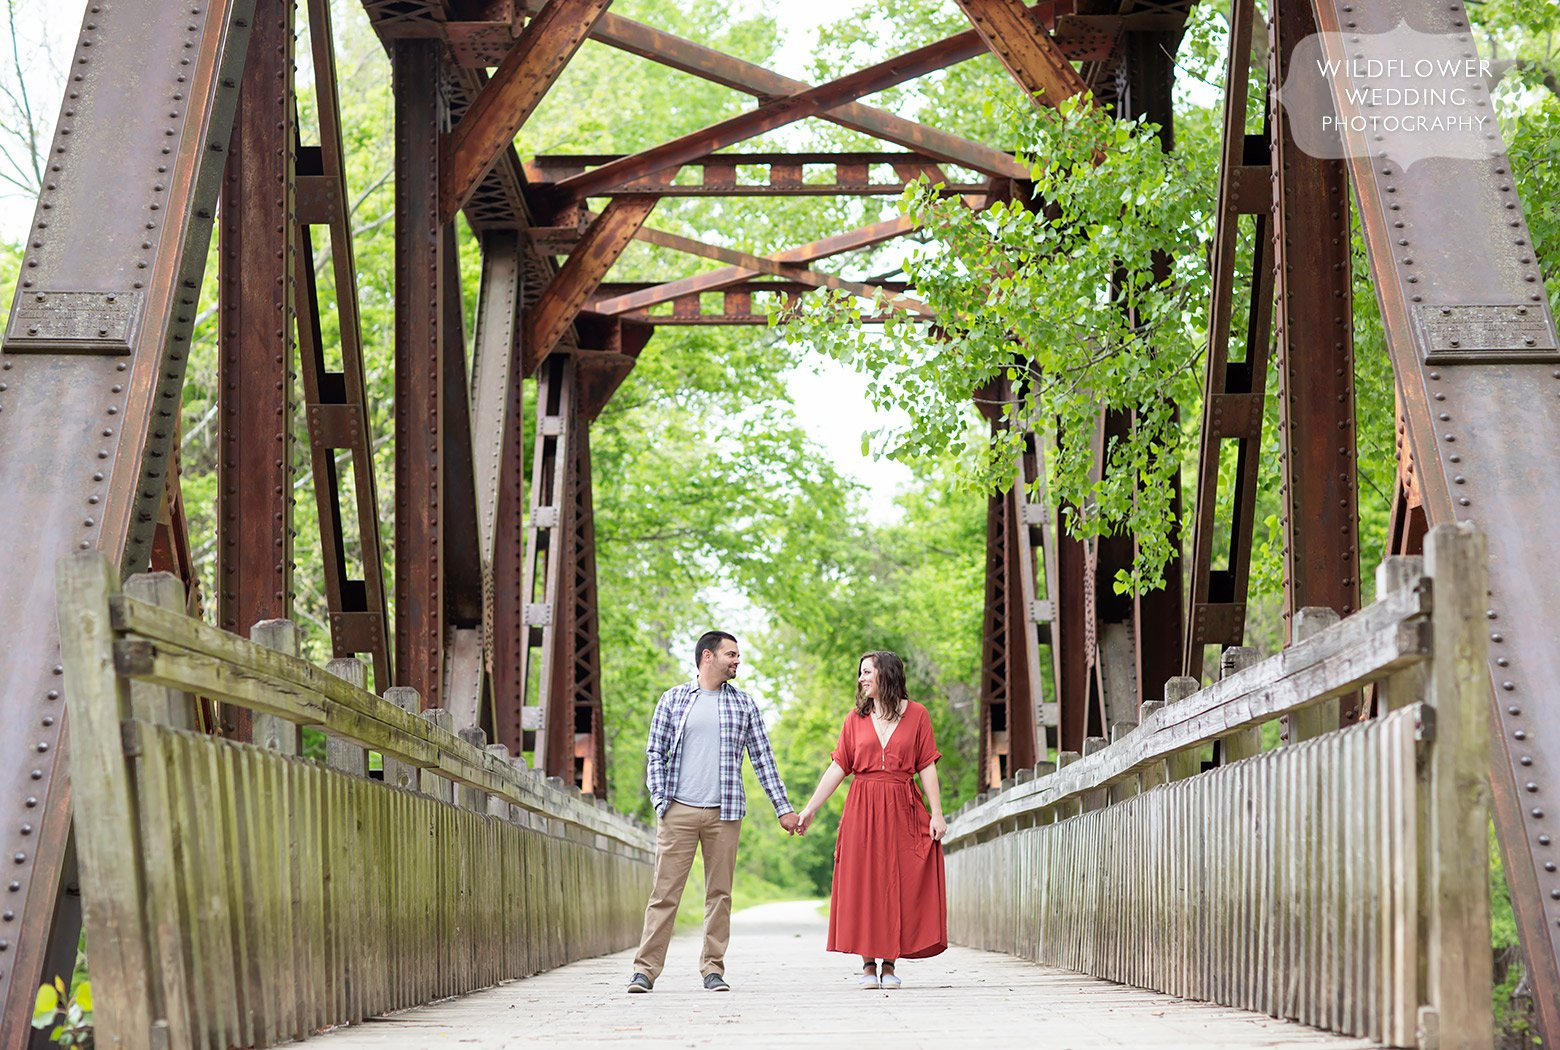 Couple stands on bridge during this Cooper's Landing portrait photography engagement session.